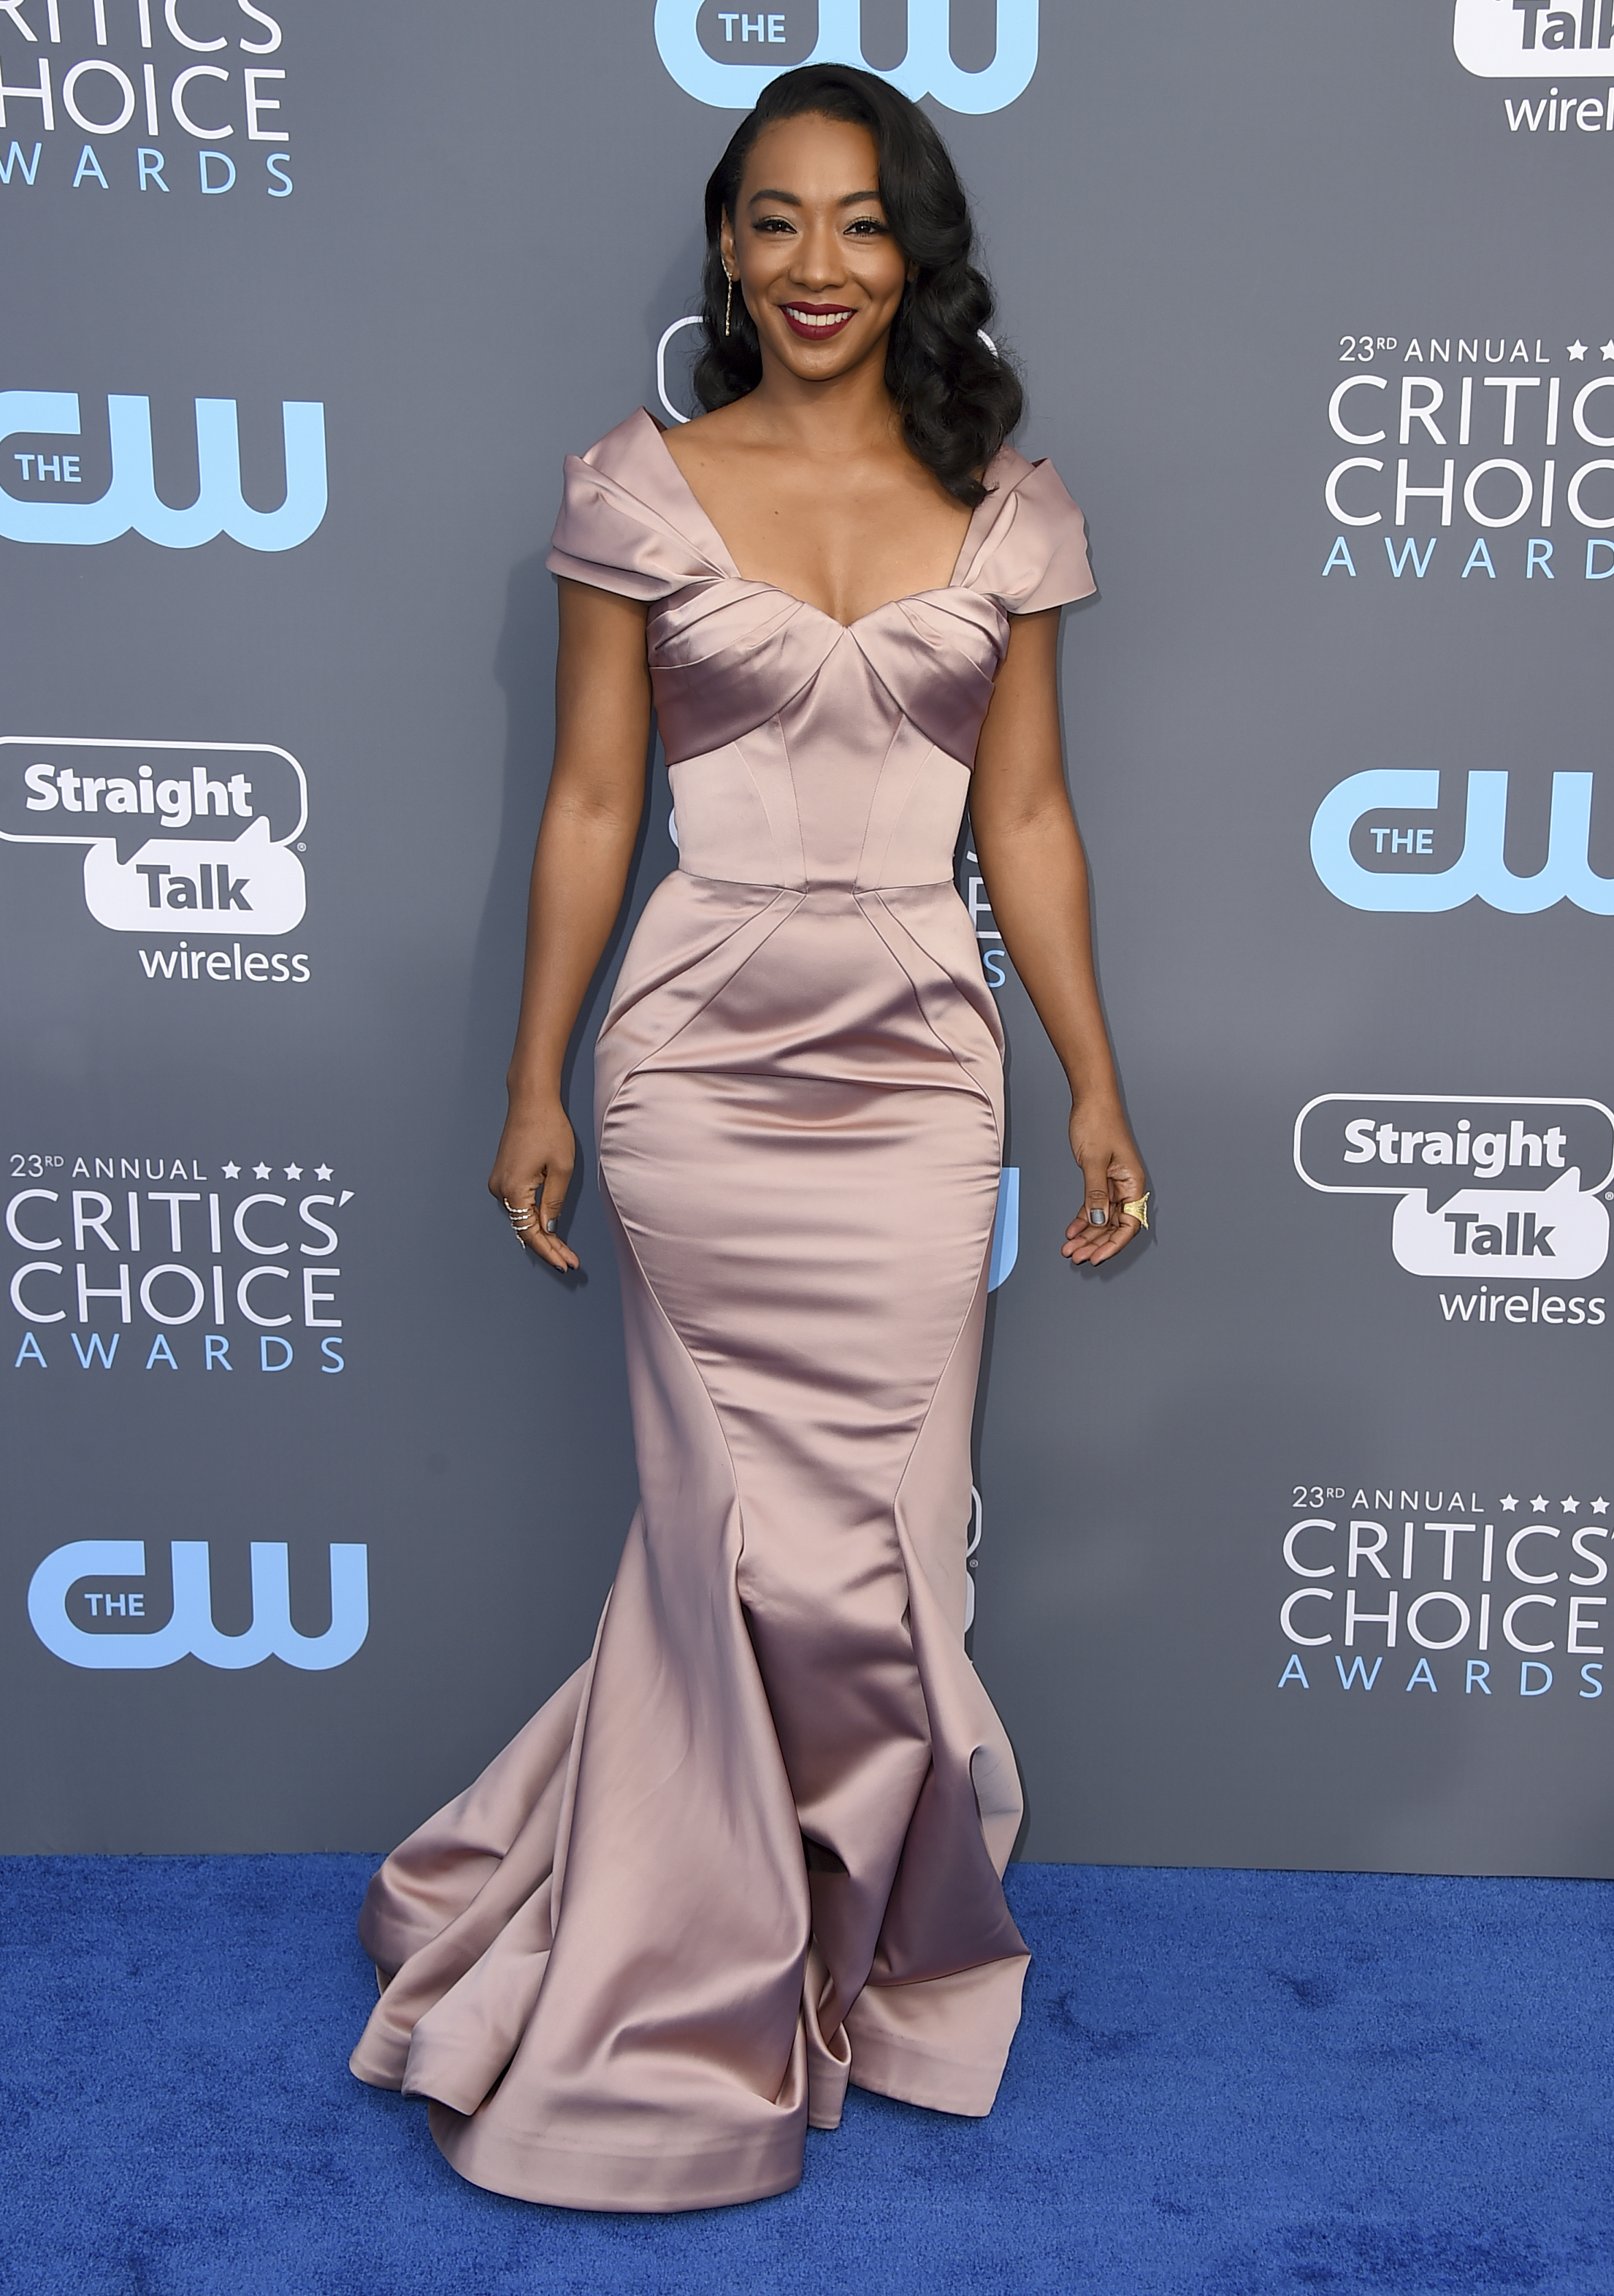 <div class='meta'><div class='origin-logo' data-origin='AP'></div><span class='caption-text' data-credit='Jordan Strauss/Invision/AP'>Betty Gabriel arrives at the 23rd annual Critics' Choice Awards at the Barker Hangar on Thursday, Jan. 11, 2018, in Santa Monica, Calif.</span></div>